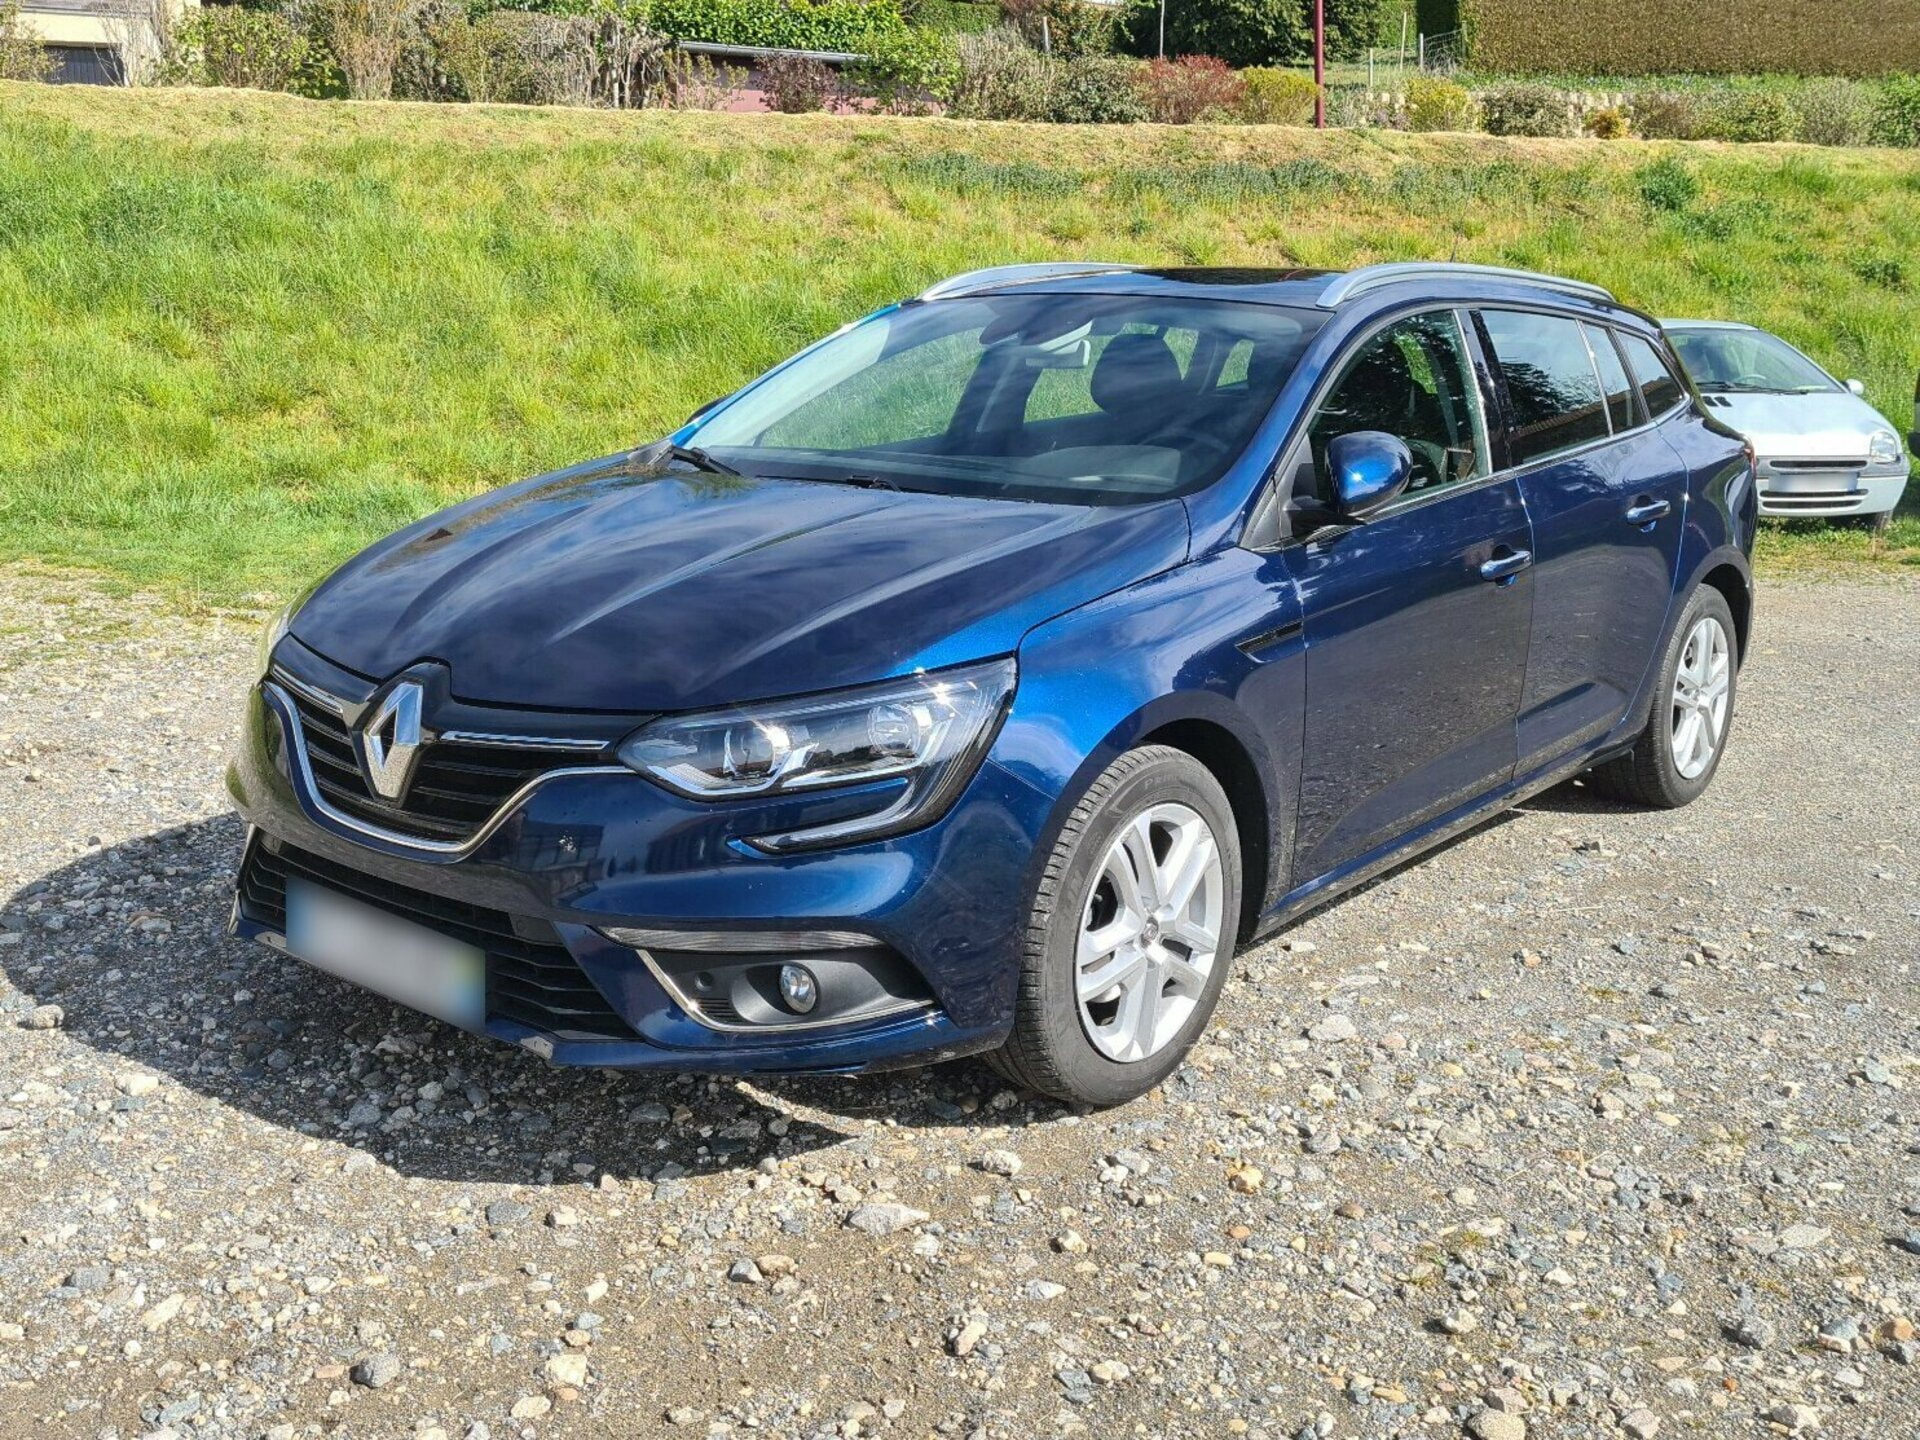 RENAULT MEGANE ESTATE 1.5 BLUEDCI 115 BUSINESS - Carventura